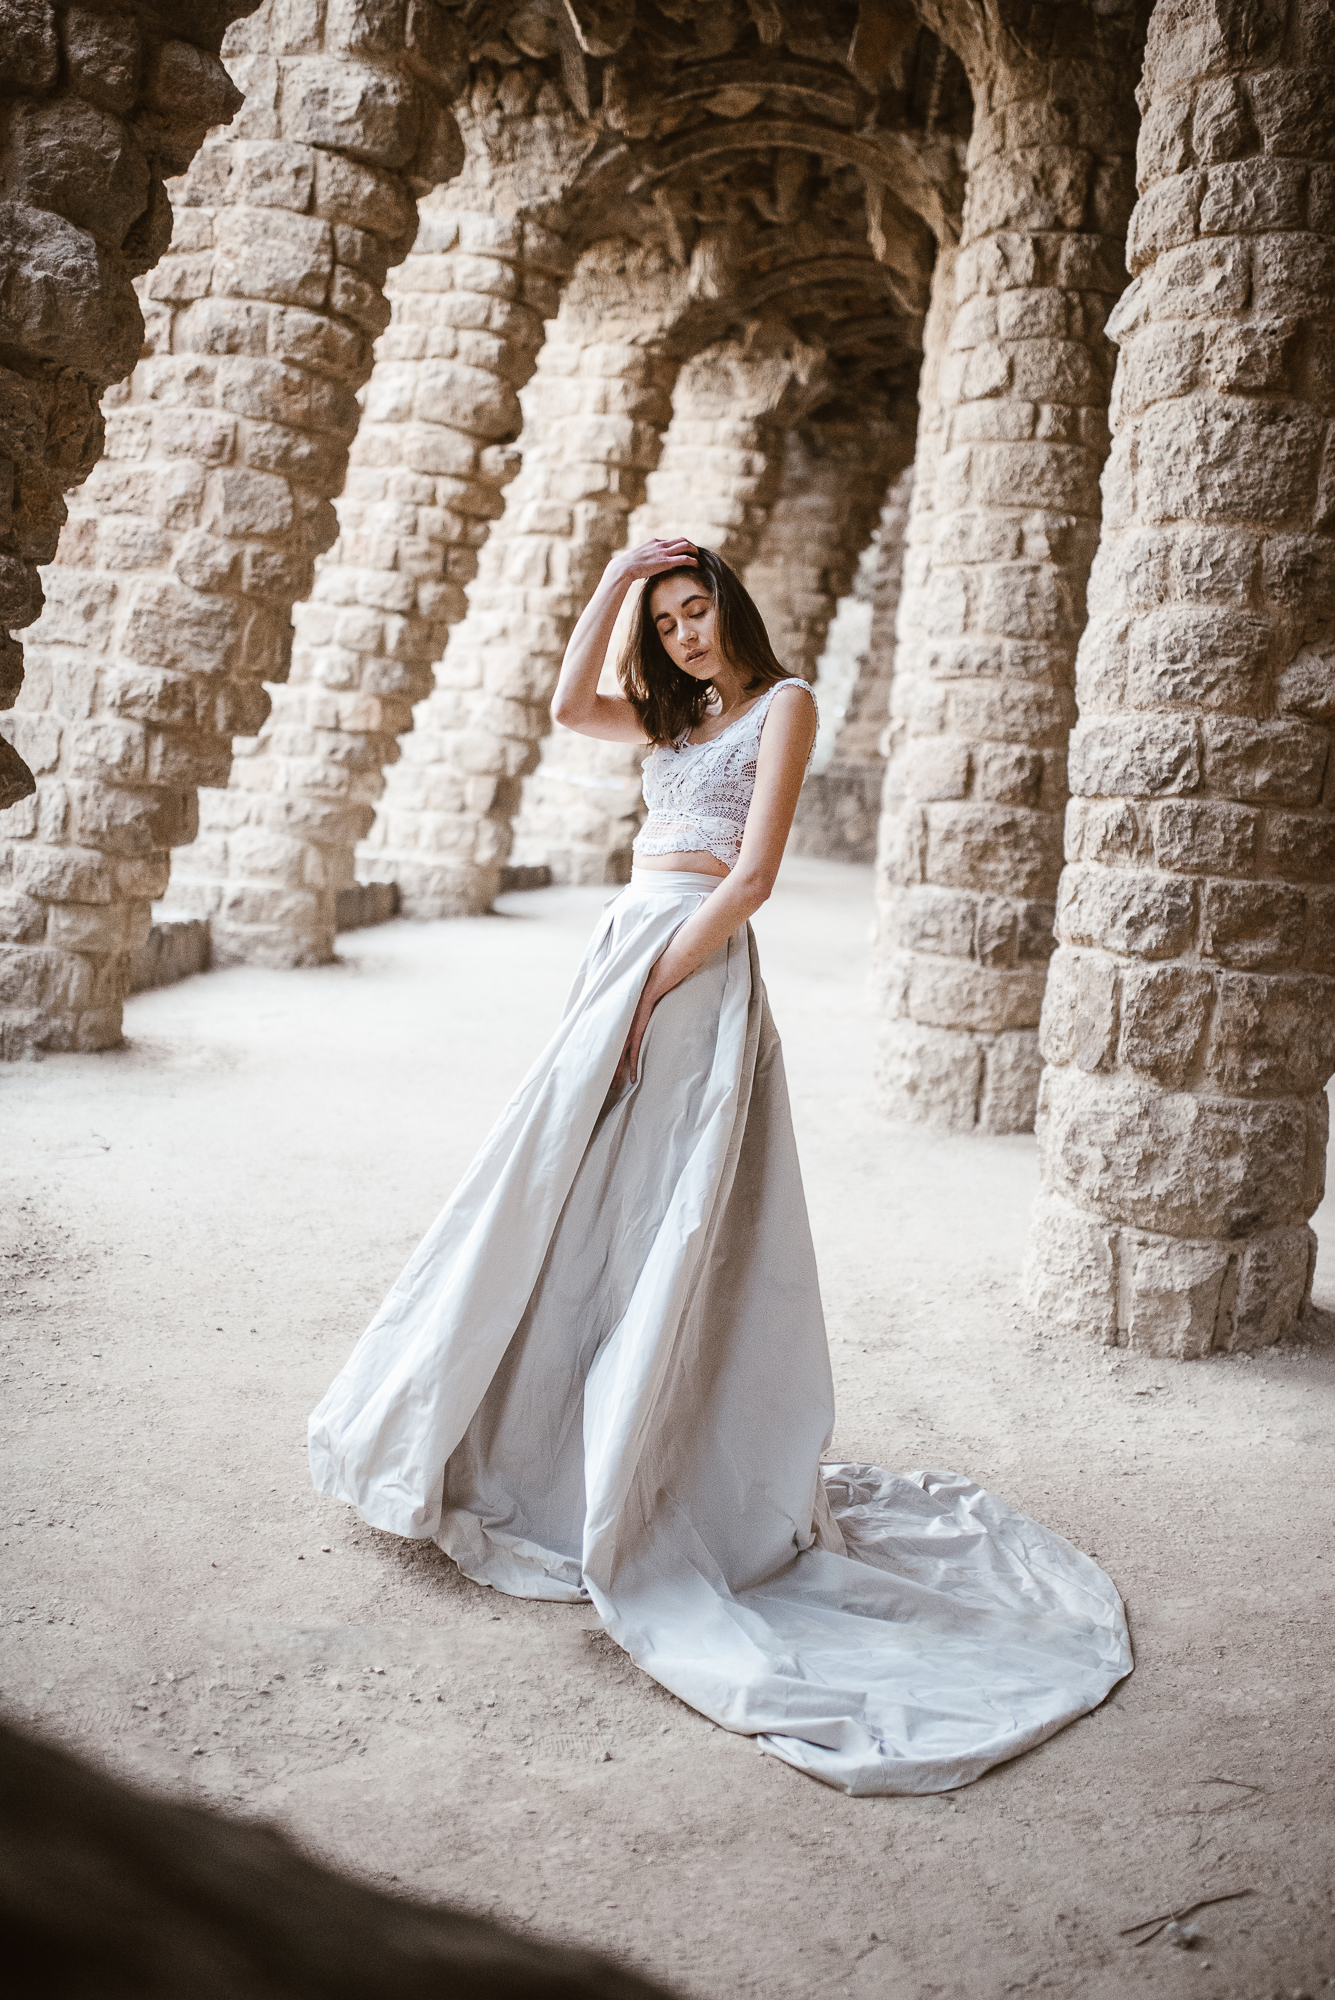 vintage wedding dress inspiration from the land of Pronovias in Güell Park | The Wedding Fox